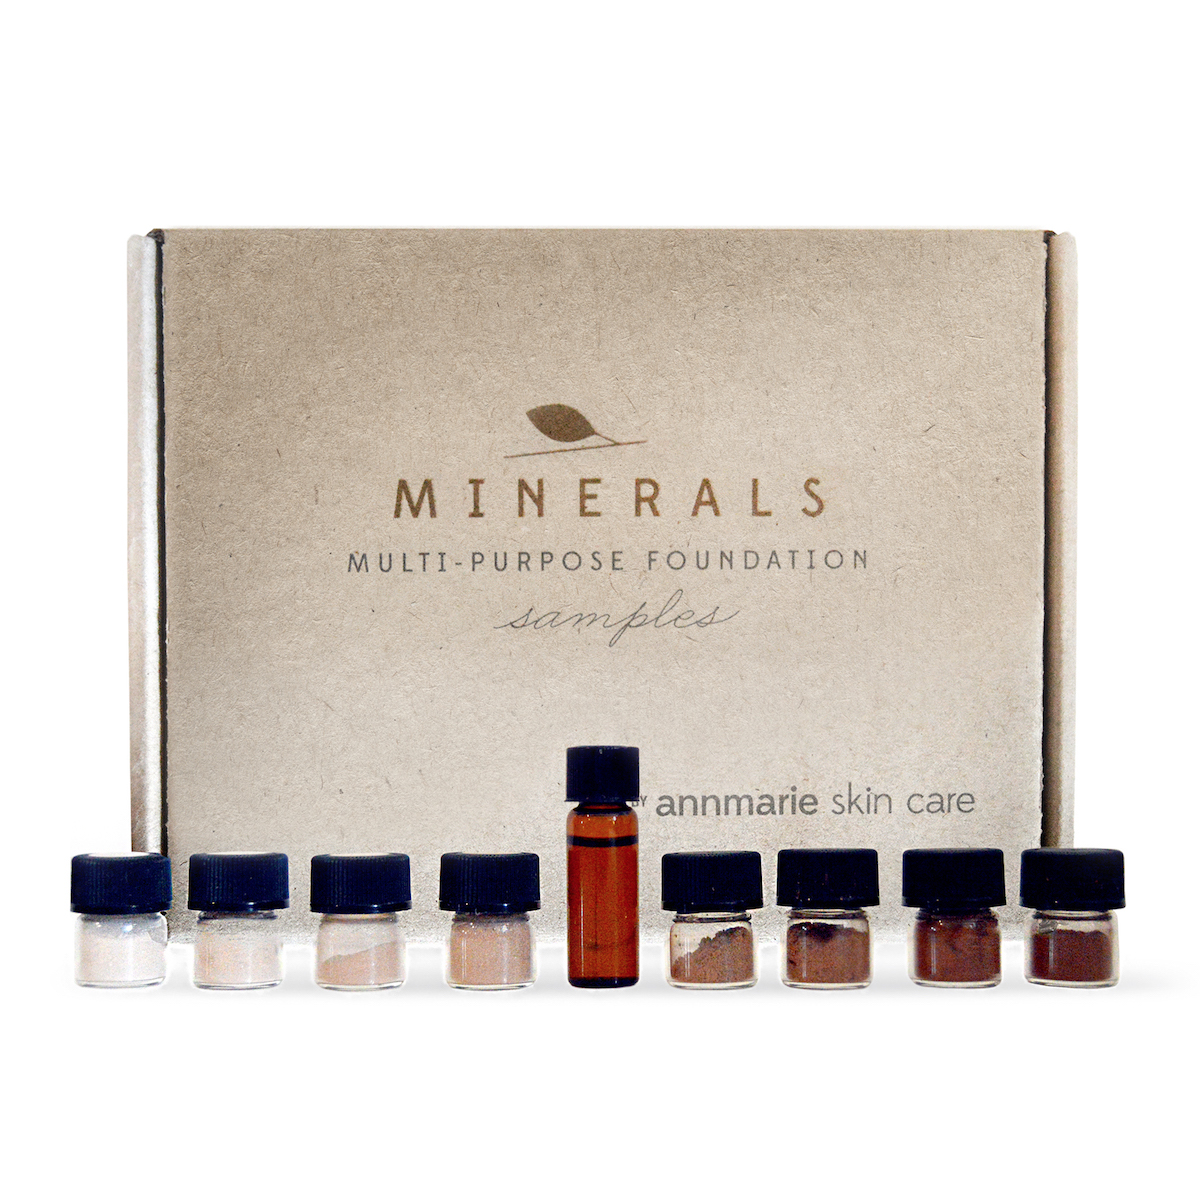 Minerals Multi-Purpose Foundation, by Annmarie Gianni, Barbara Sinclair Holistic Health Shop